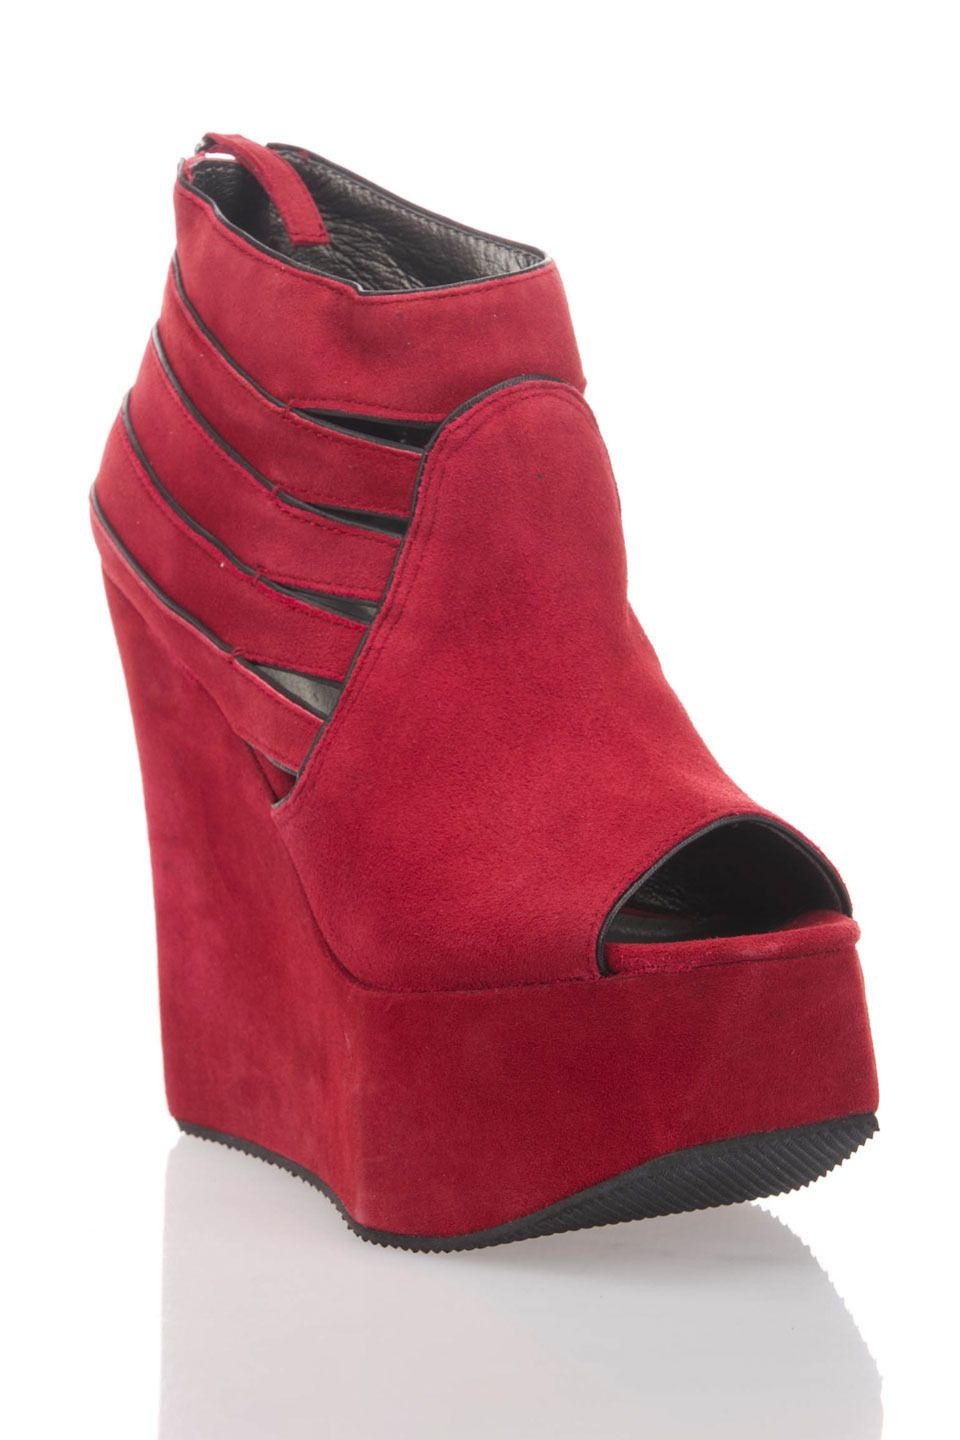 Grey City Jett Open-Toe Platform Wedge Shoes in Red - Beyond the Rack $34.99